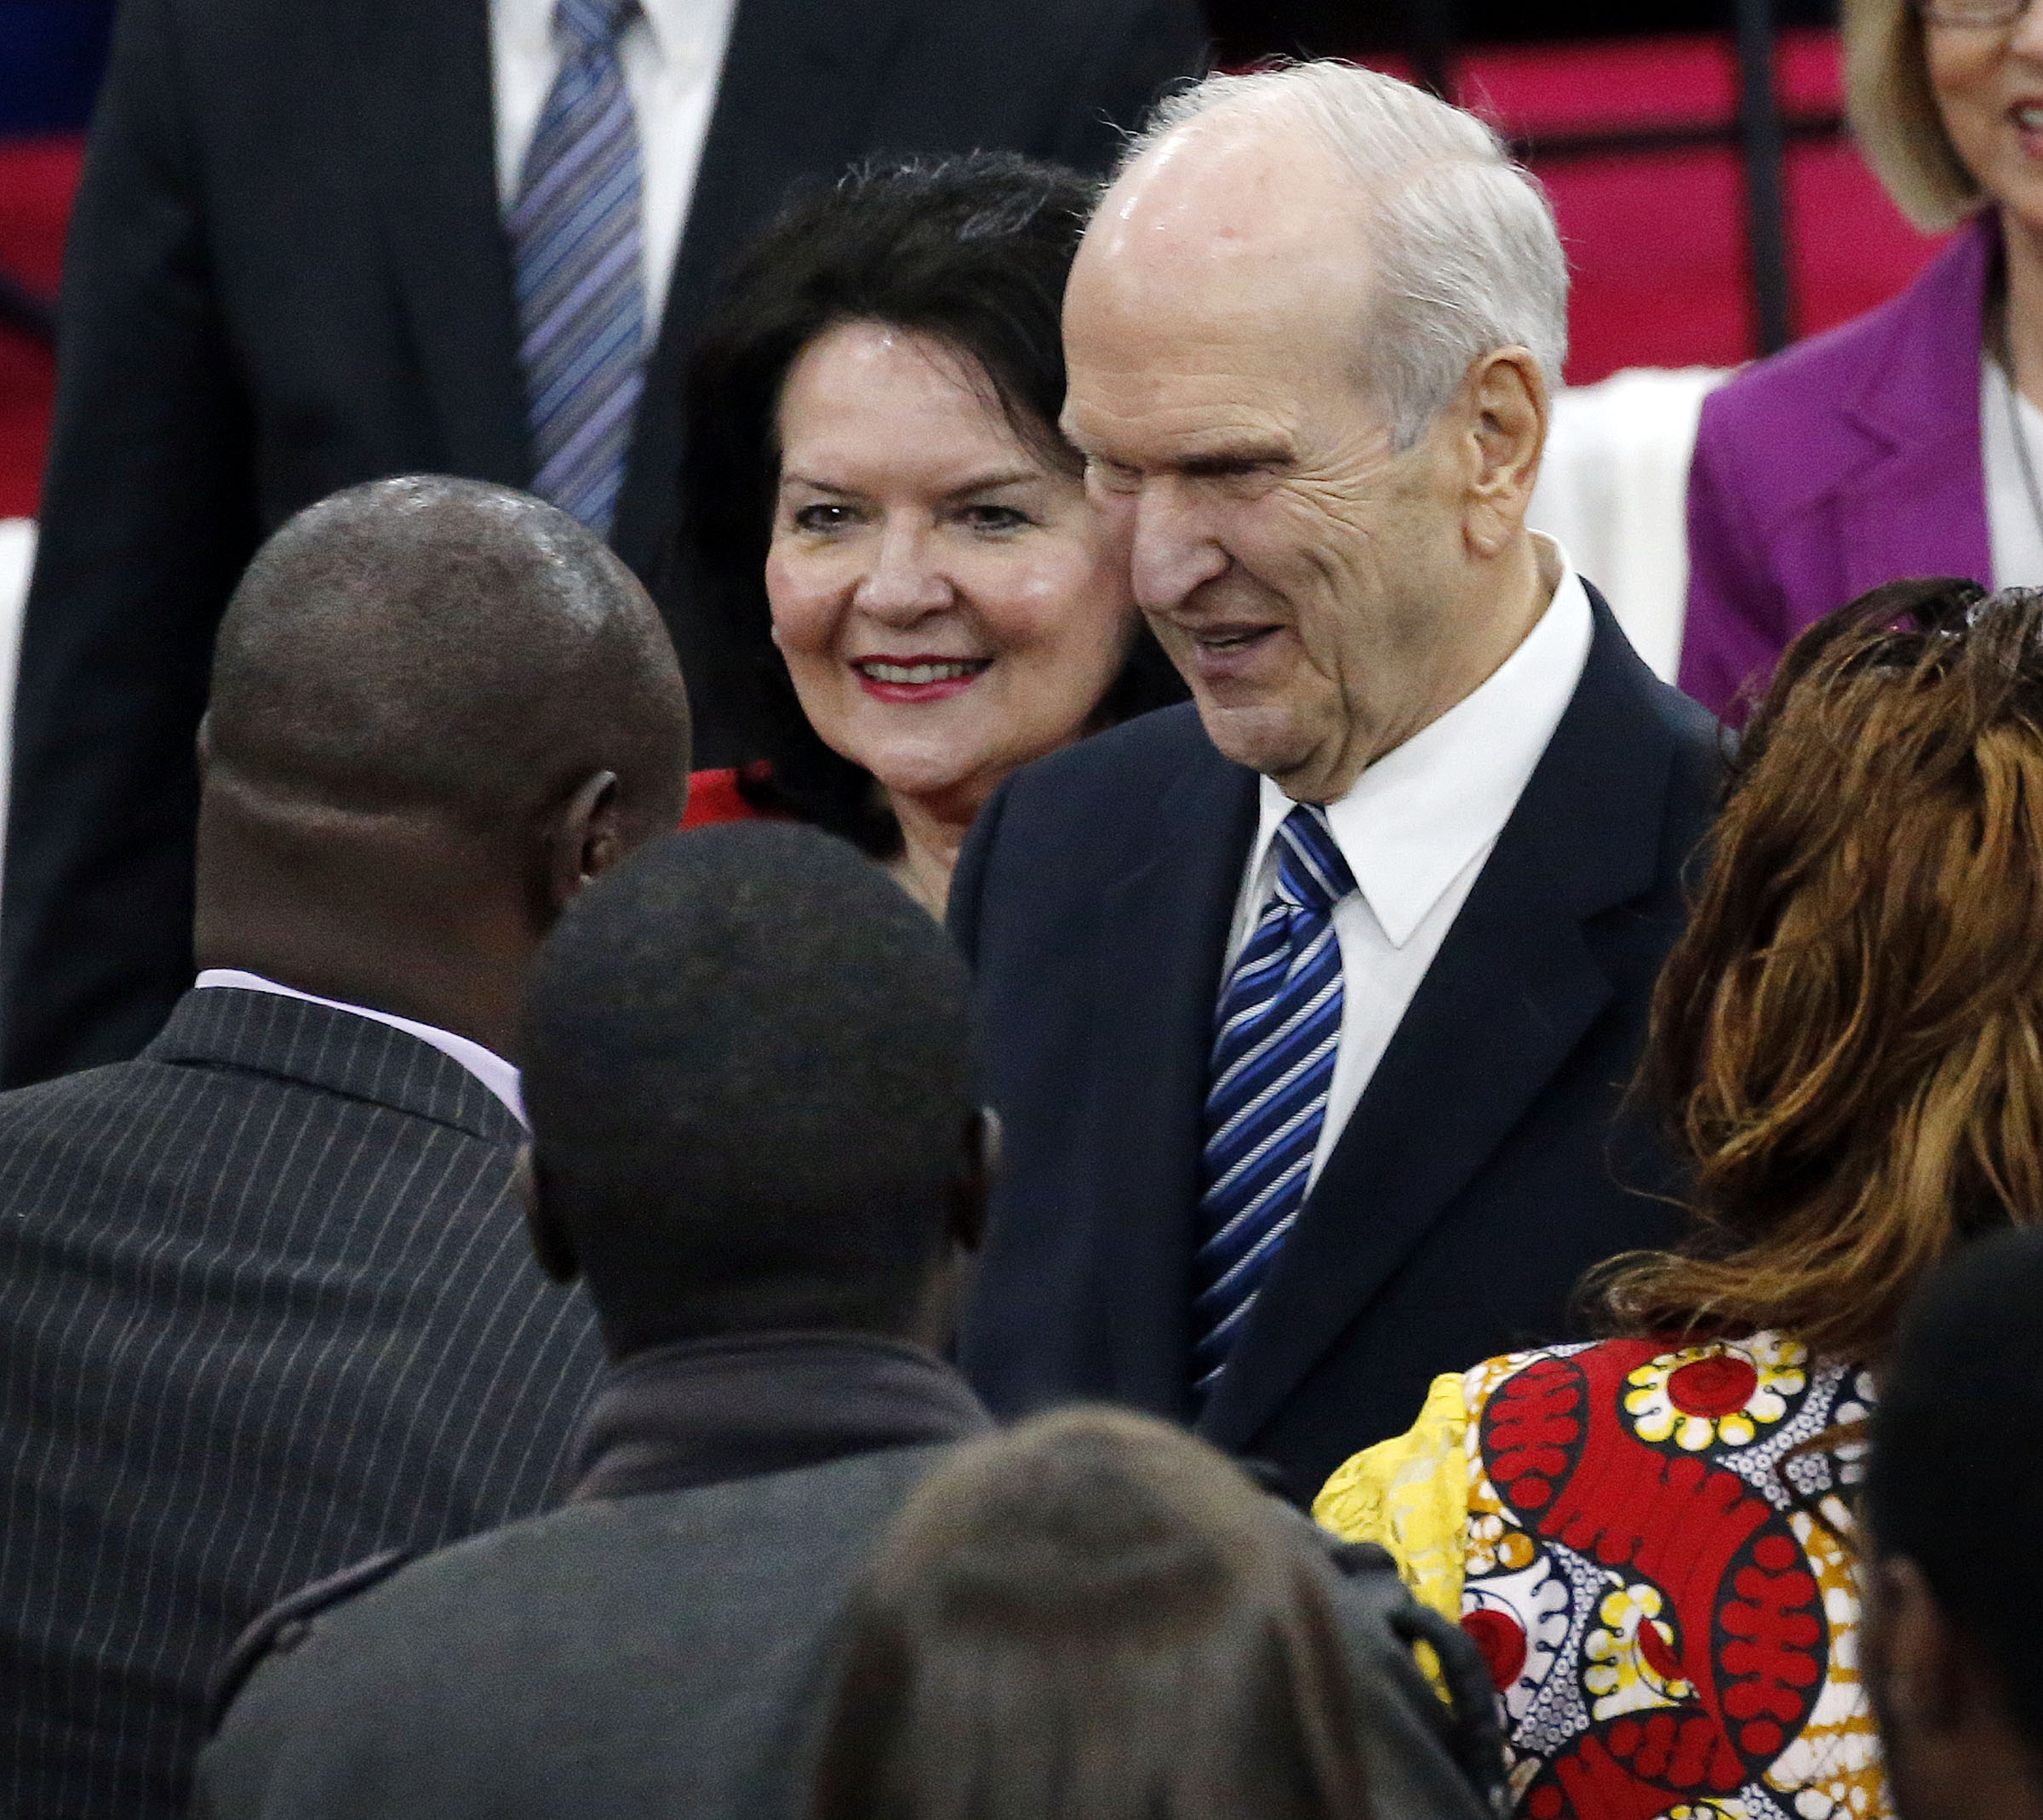 President Russell M. Nelson and Sister Wendy Watson Nelson of The Church of Jesus Christ of Latter-day Saints greet some of those in attendance following a special devotional in Nairobi, Kenya, on Monday, April 16, 2018.